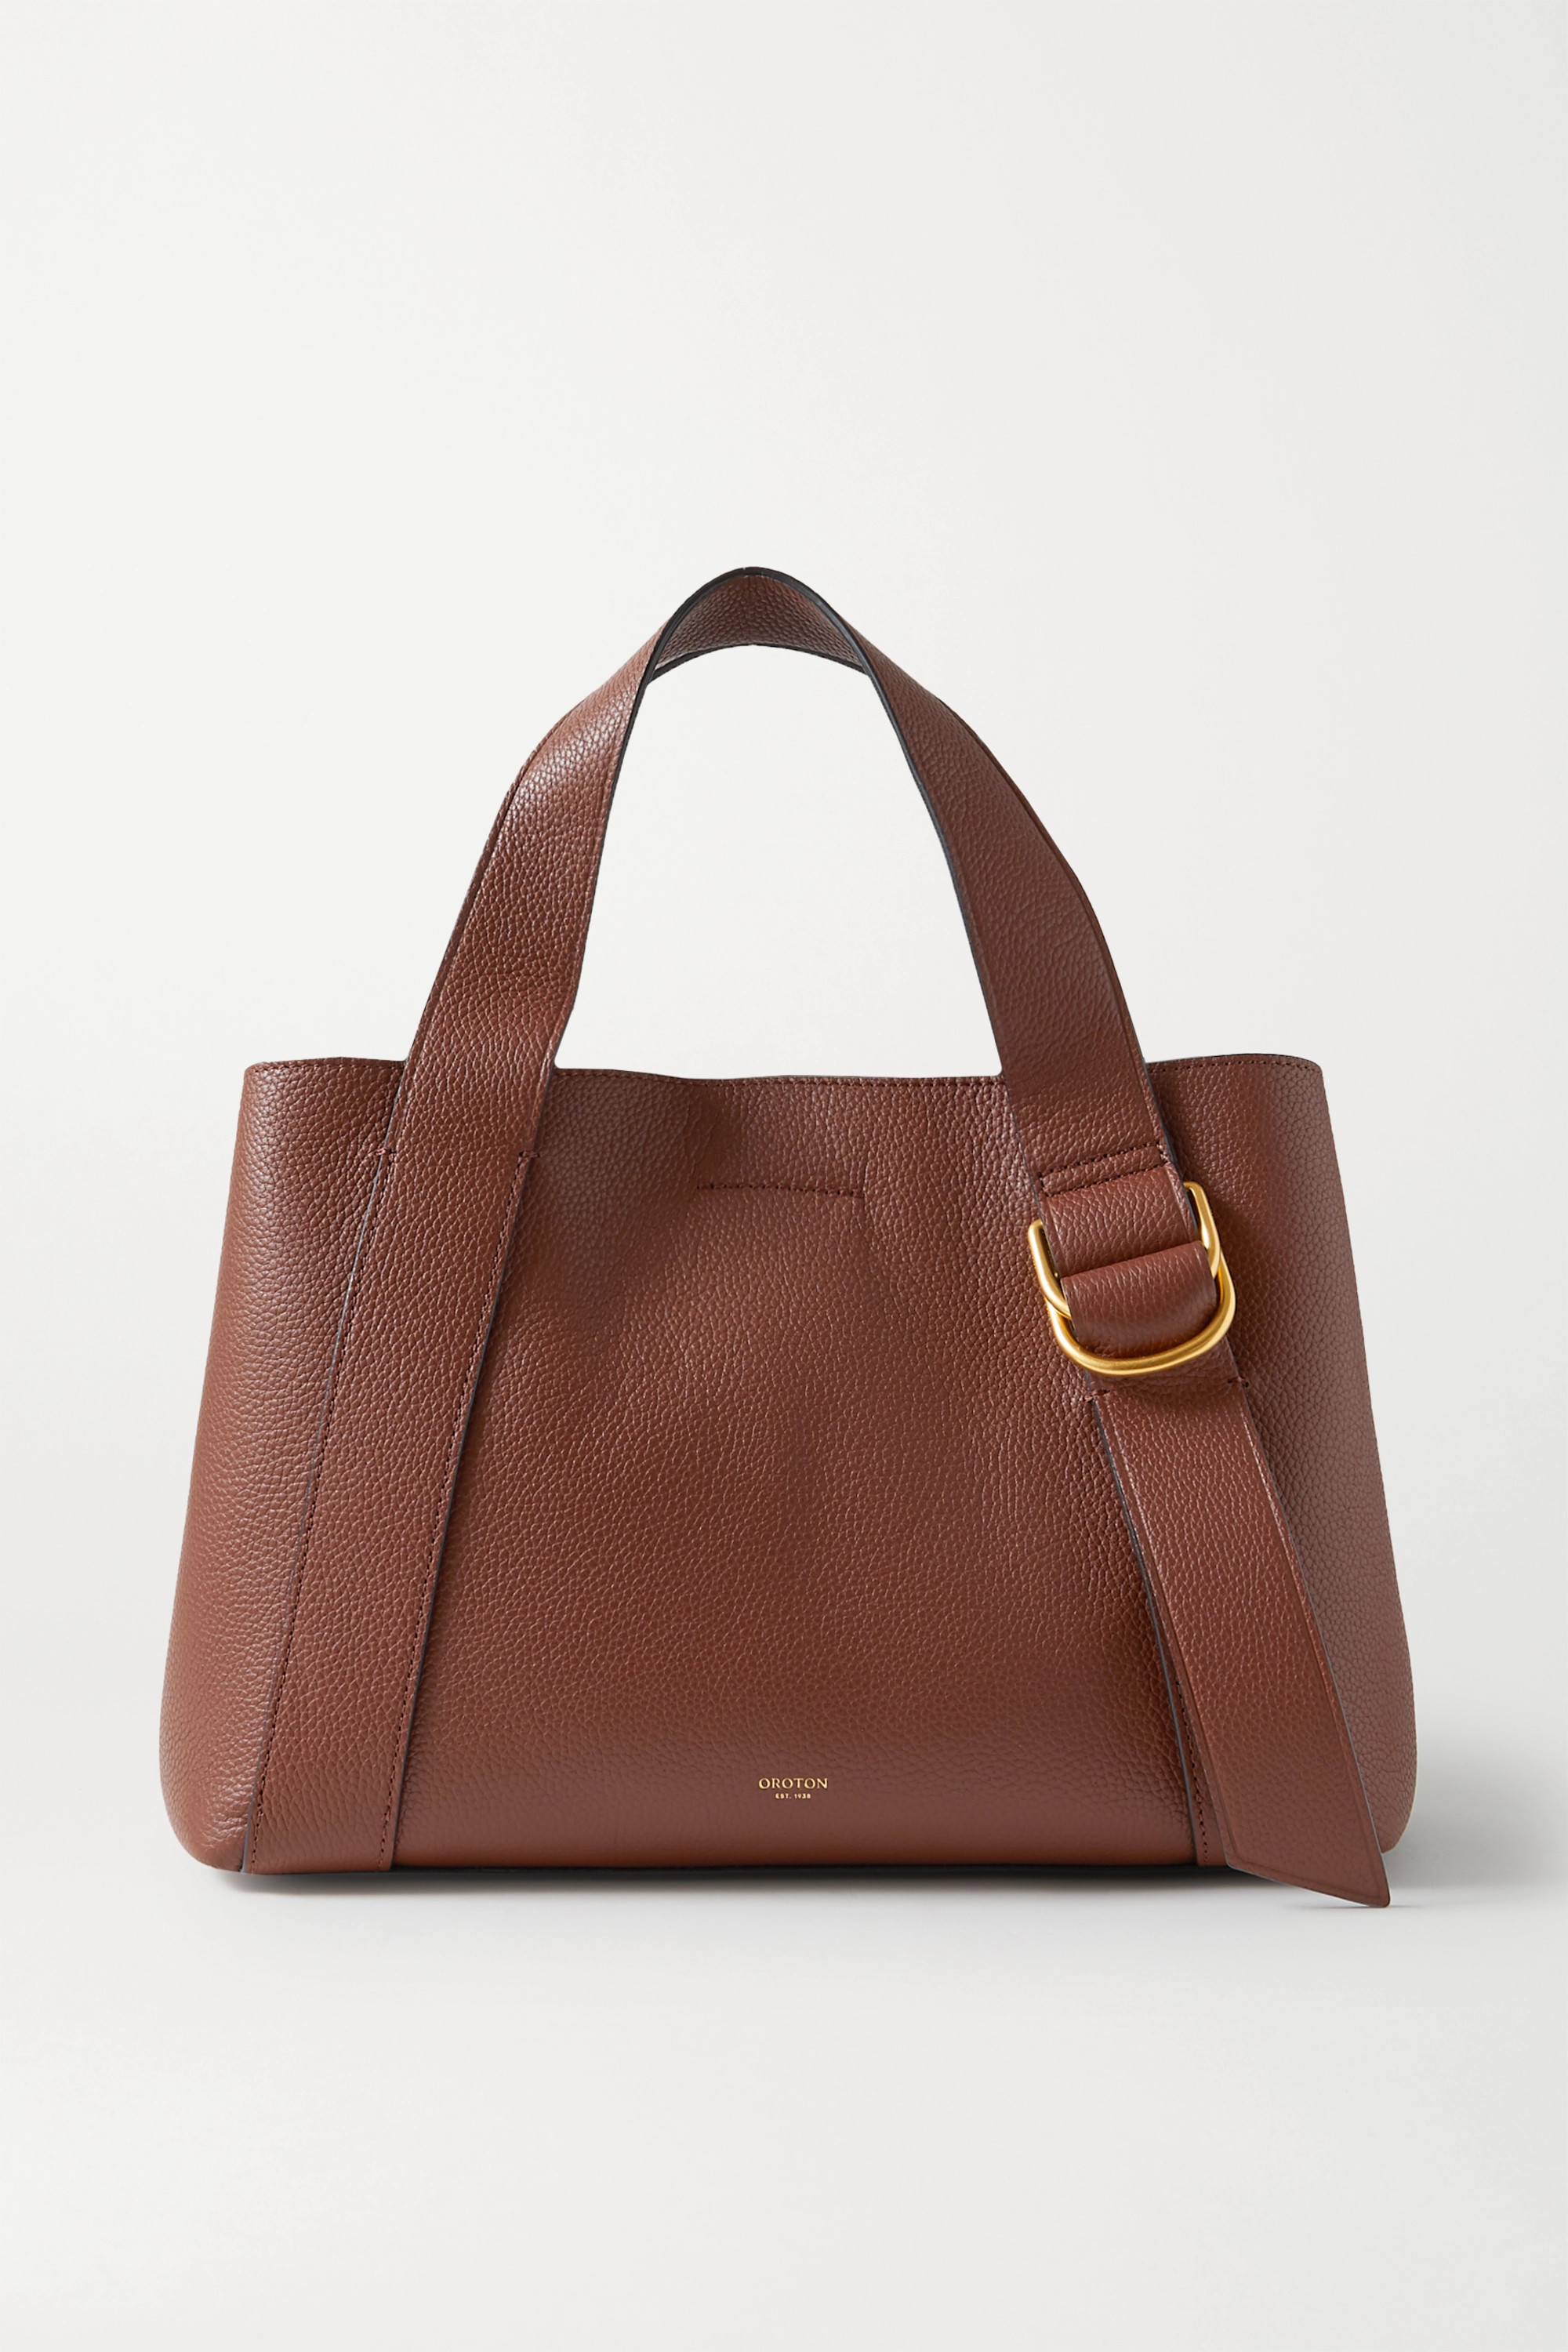 Oroton Daria medium textured-leather tote